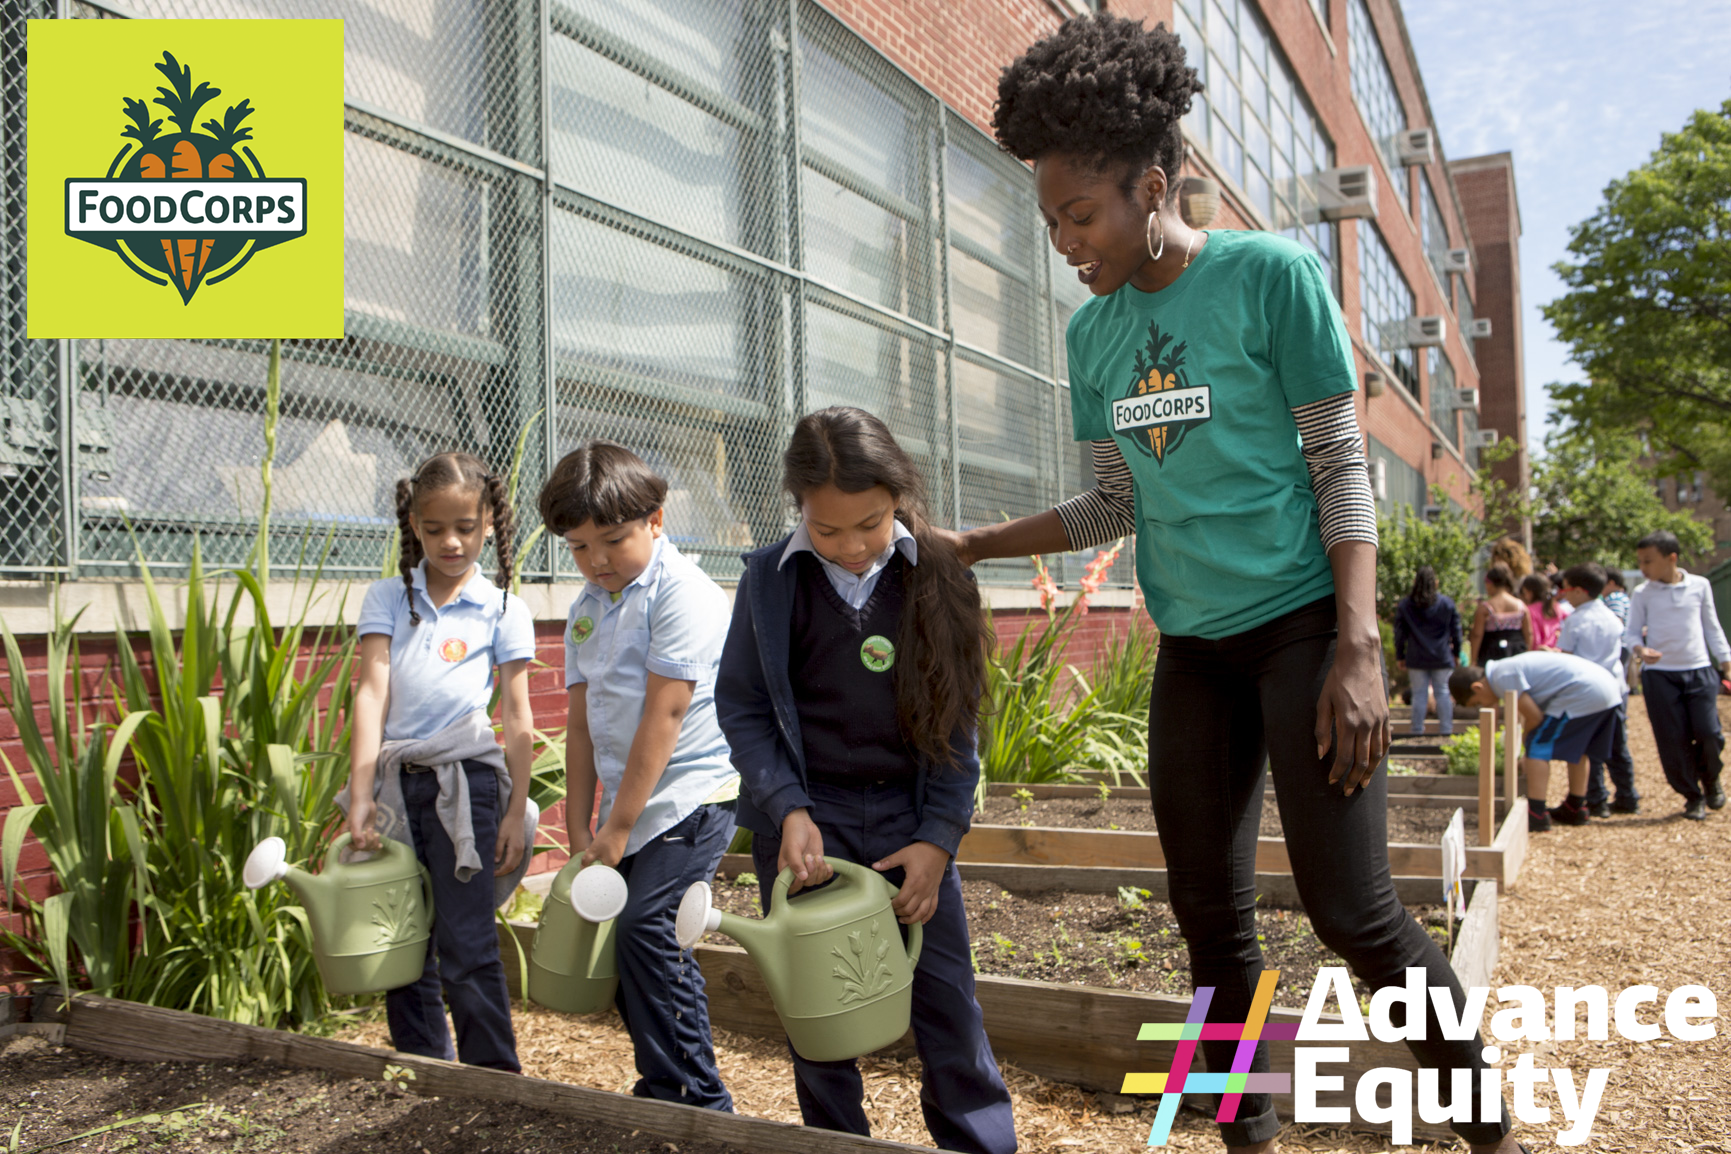 #AdvanceEquity: Spotlight on FoodCorps